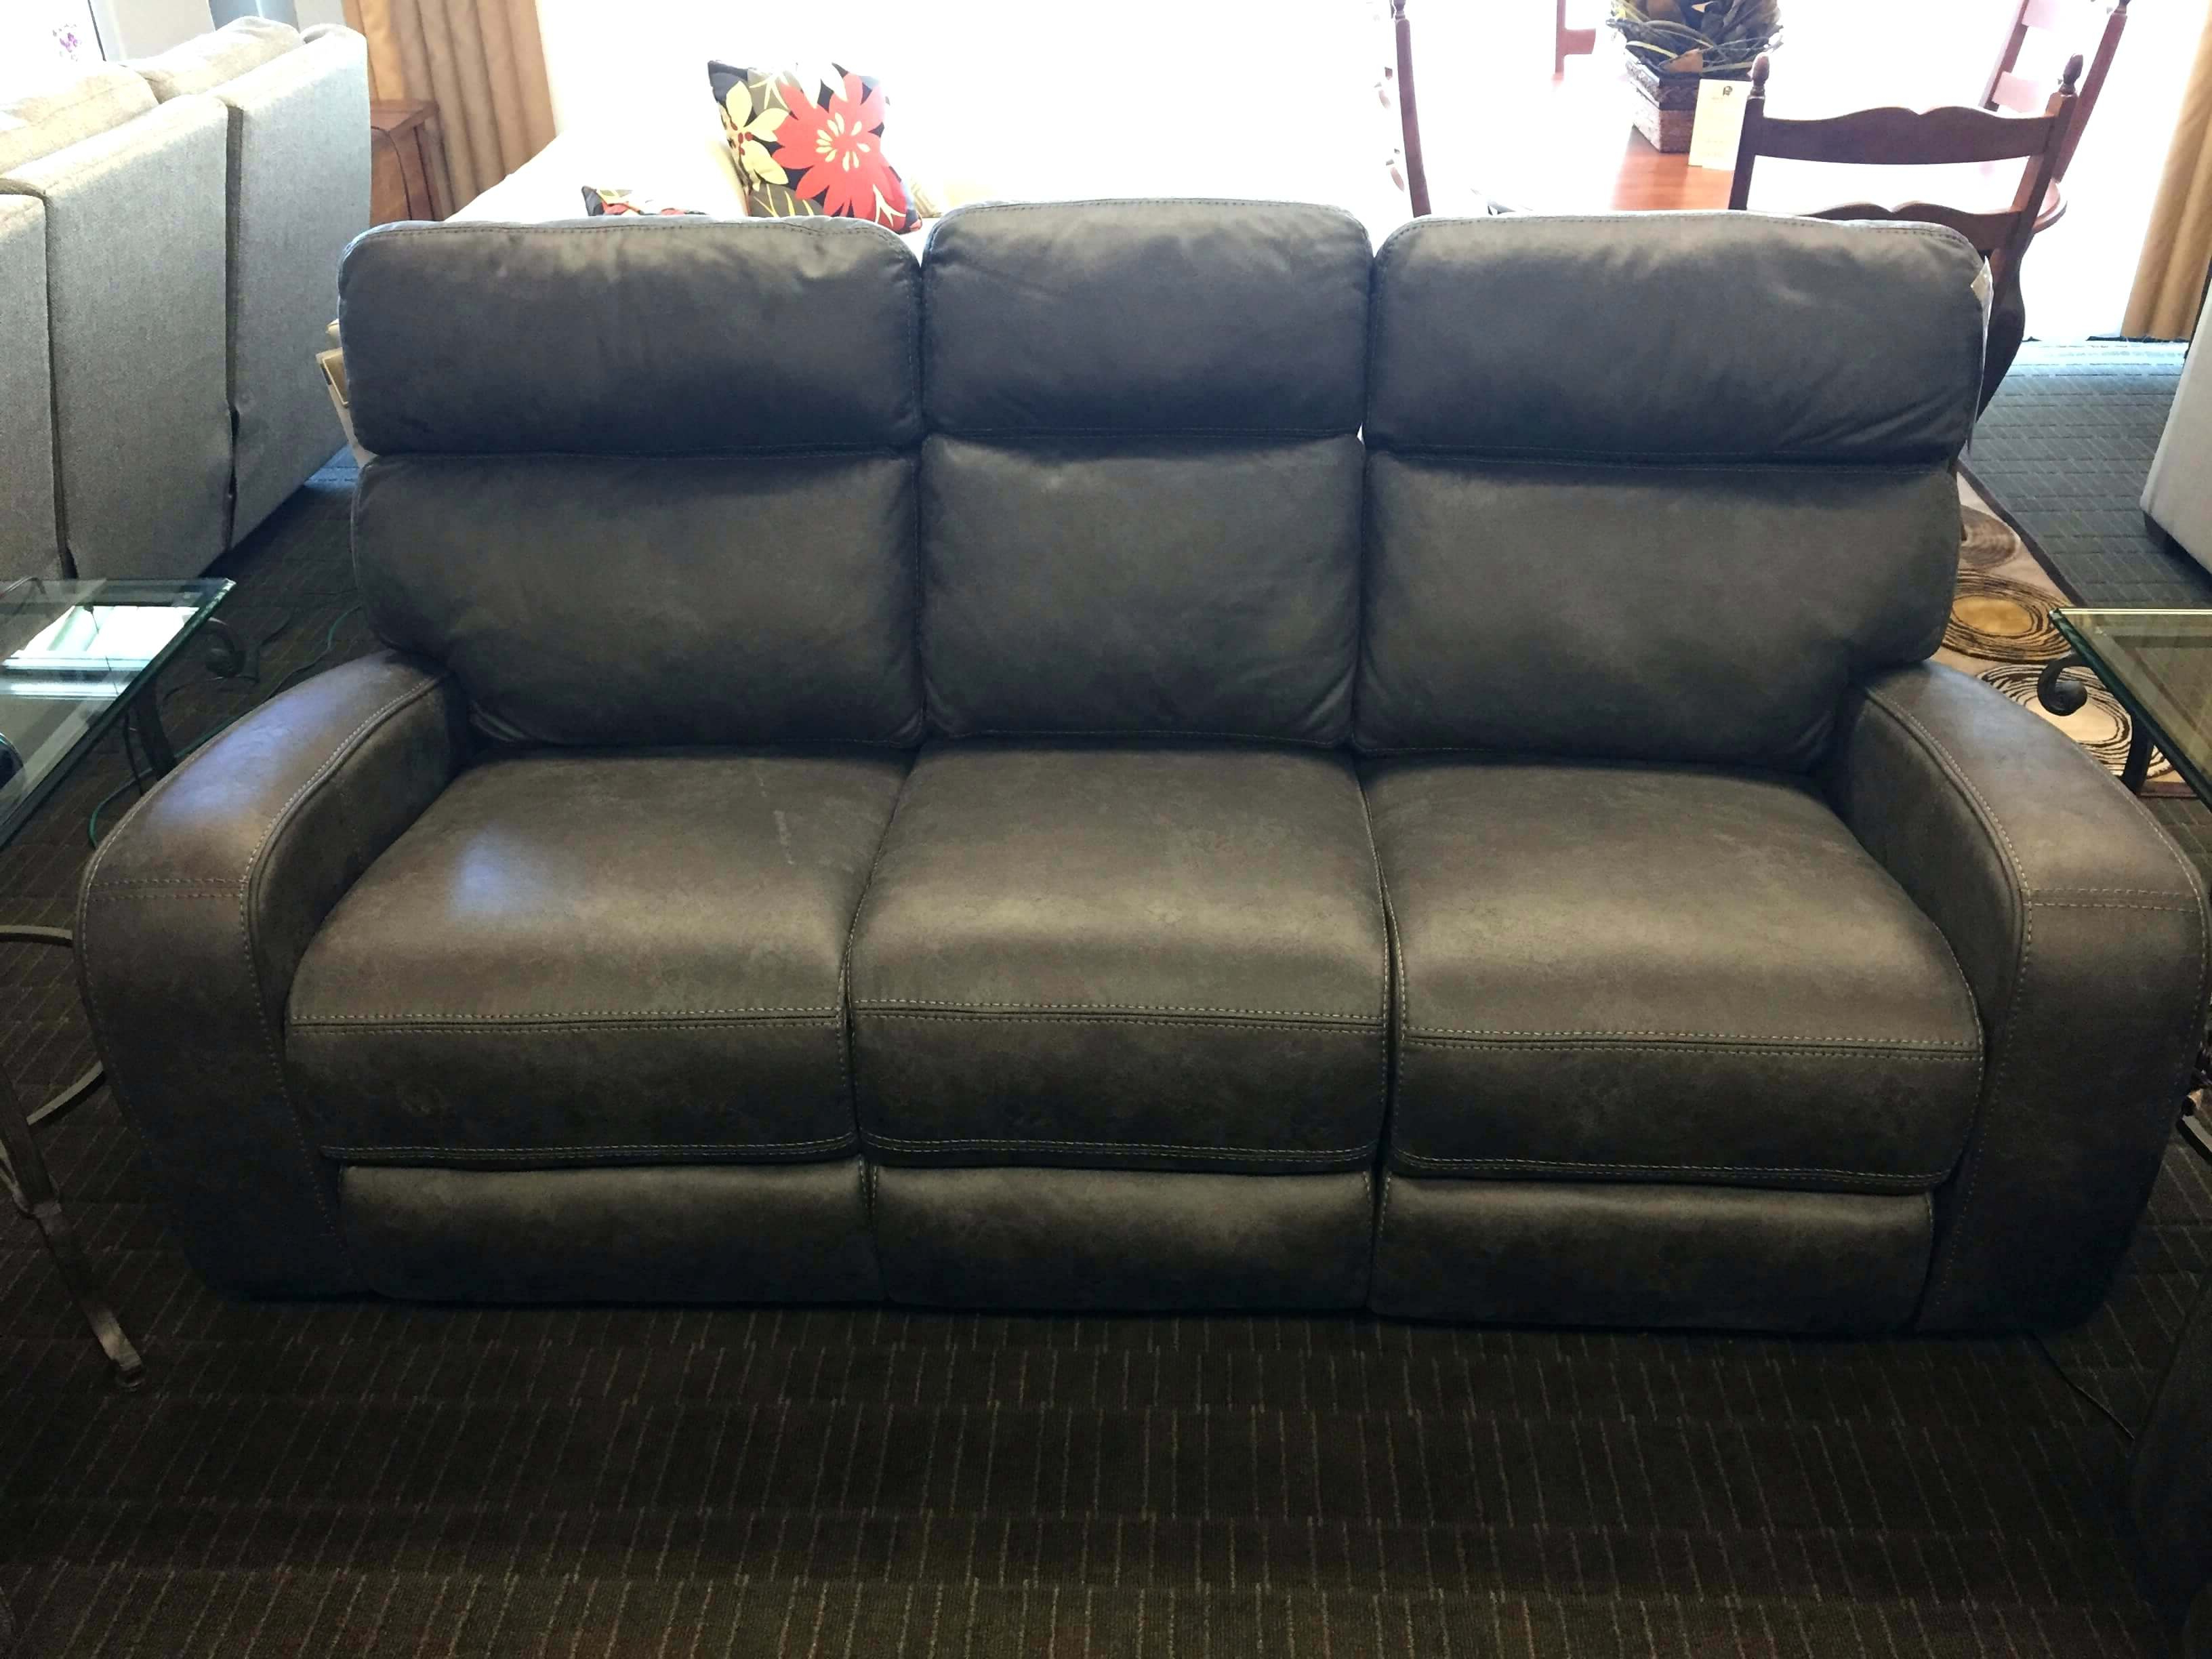 Marcus Chocolate 6 Piece Sectionals With Power Headrest And Usb Within 2018 Couch Usb Outlet. Perfect Click To View Full Size Of Image Of Power (Gallery 8 of 20)